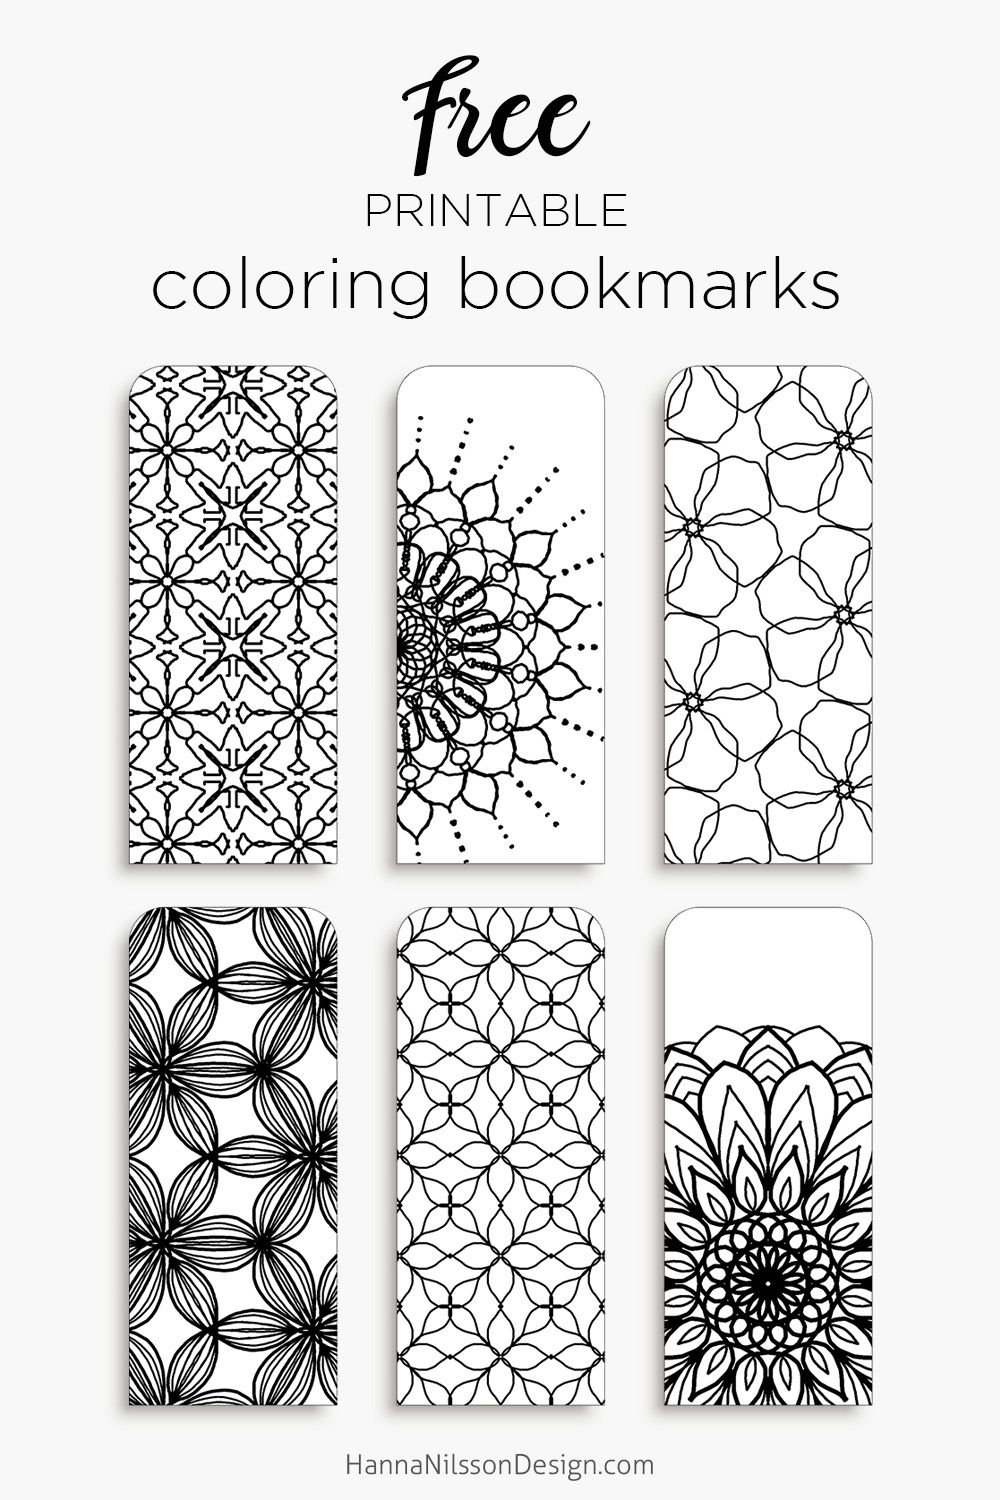 color your own bookmarks - free printable bookmarks for coloring